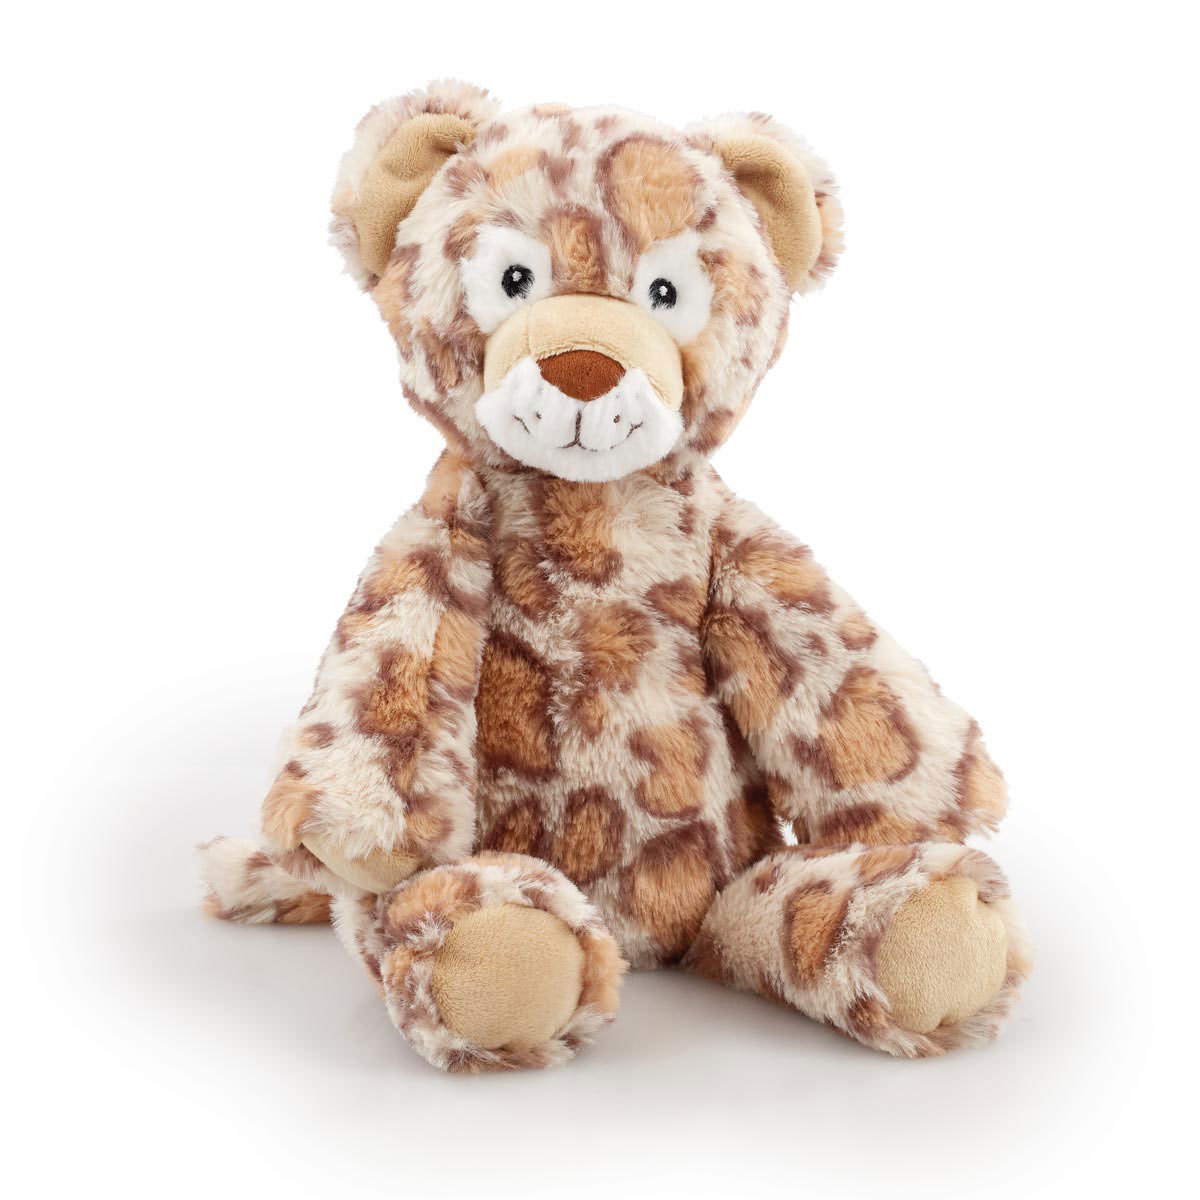 Early Learning Centre Plush Toy - Leopard from Early Learning Center